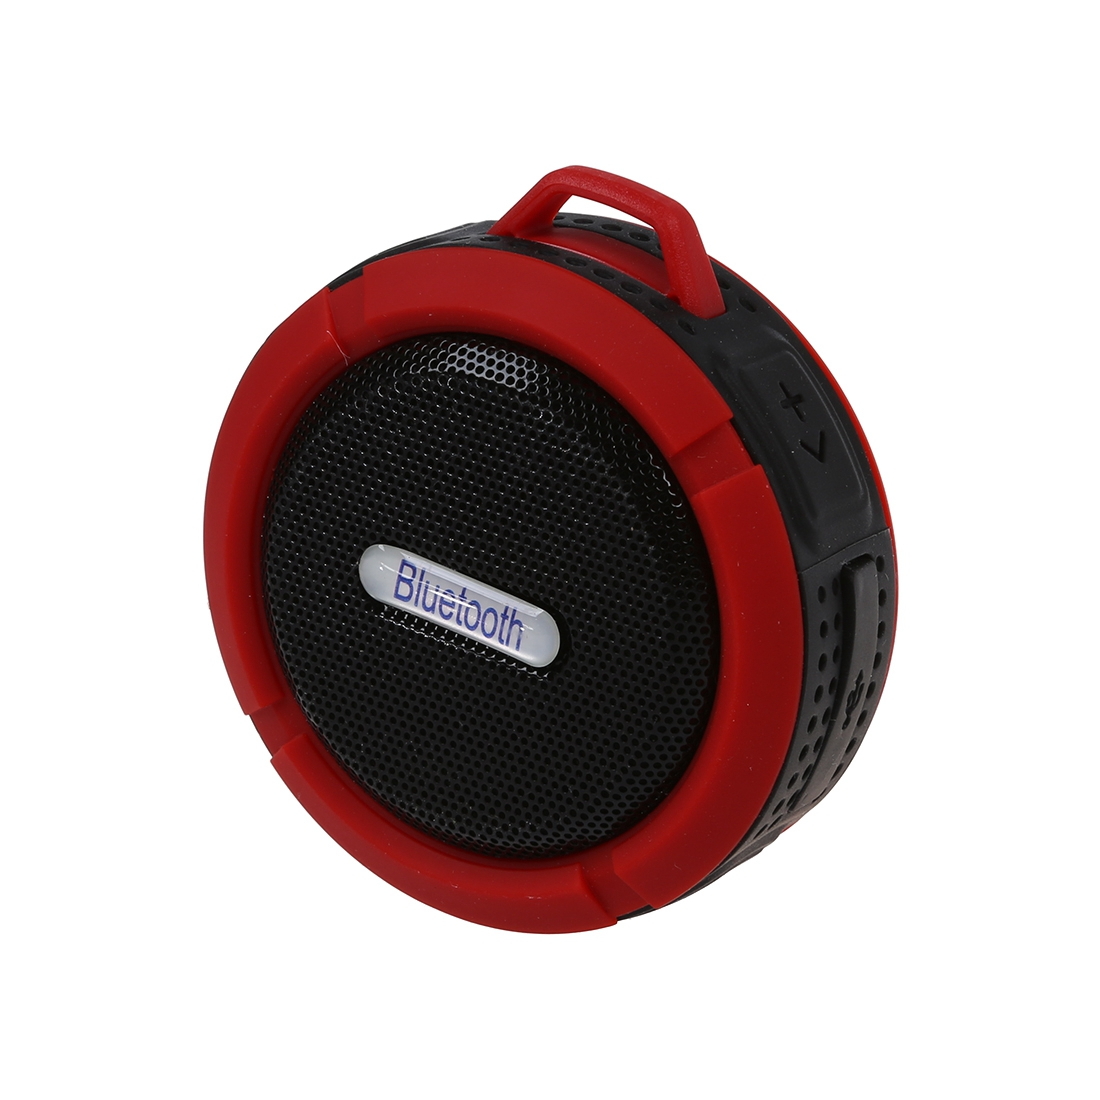 SCLS New Mini Portable Speaker Wireless Waterproof Bluetooth V3 0 Rechargeable 5W Suitable for Shower Swimming